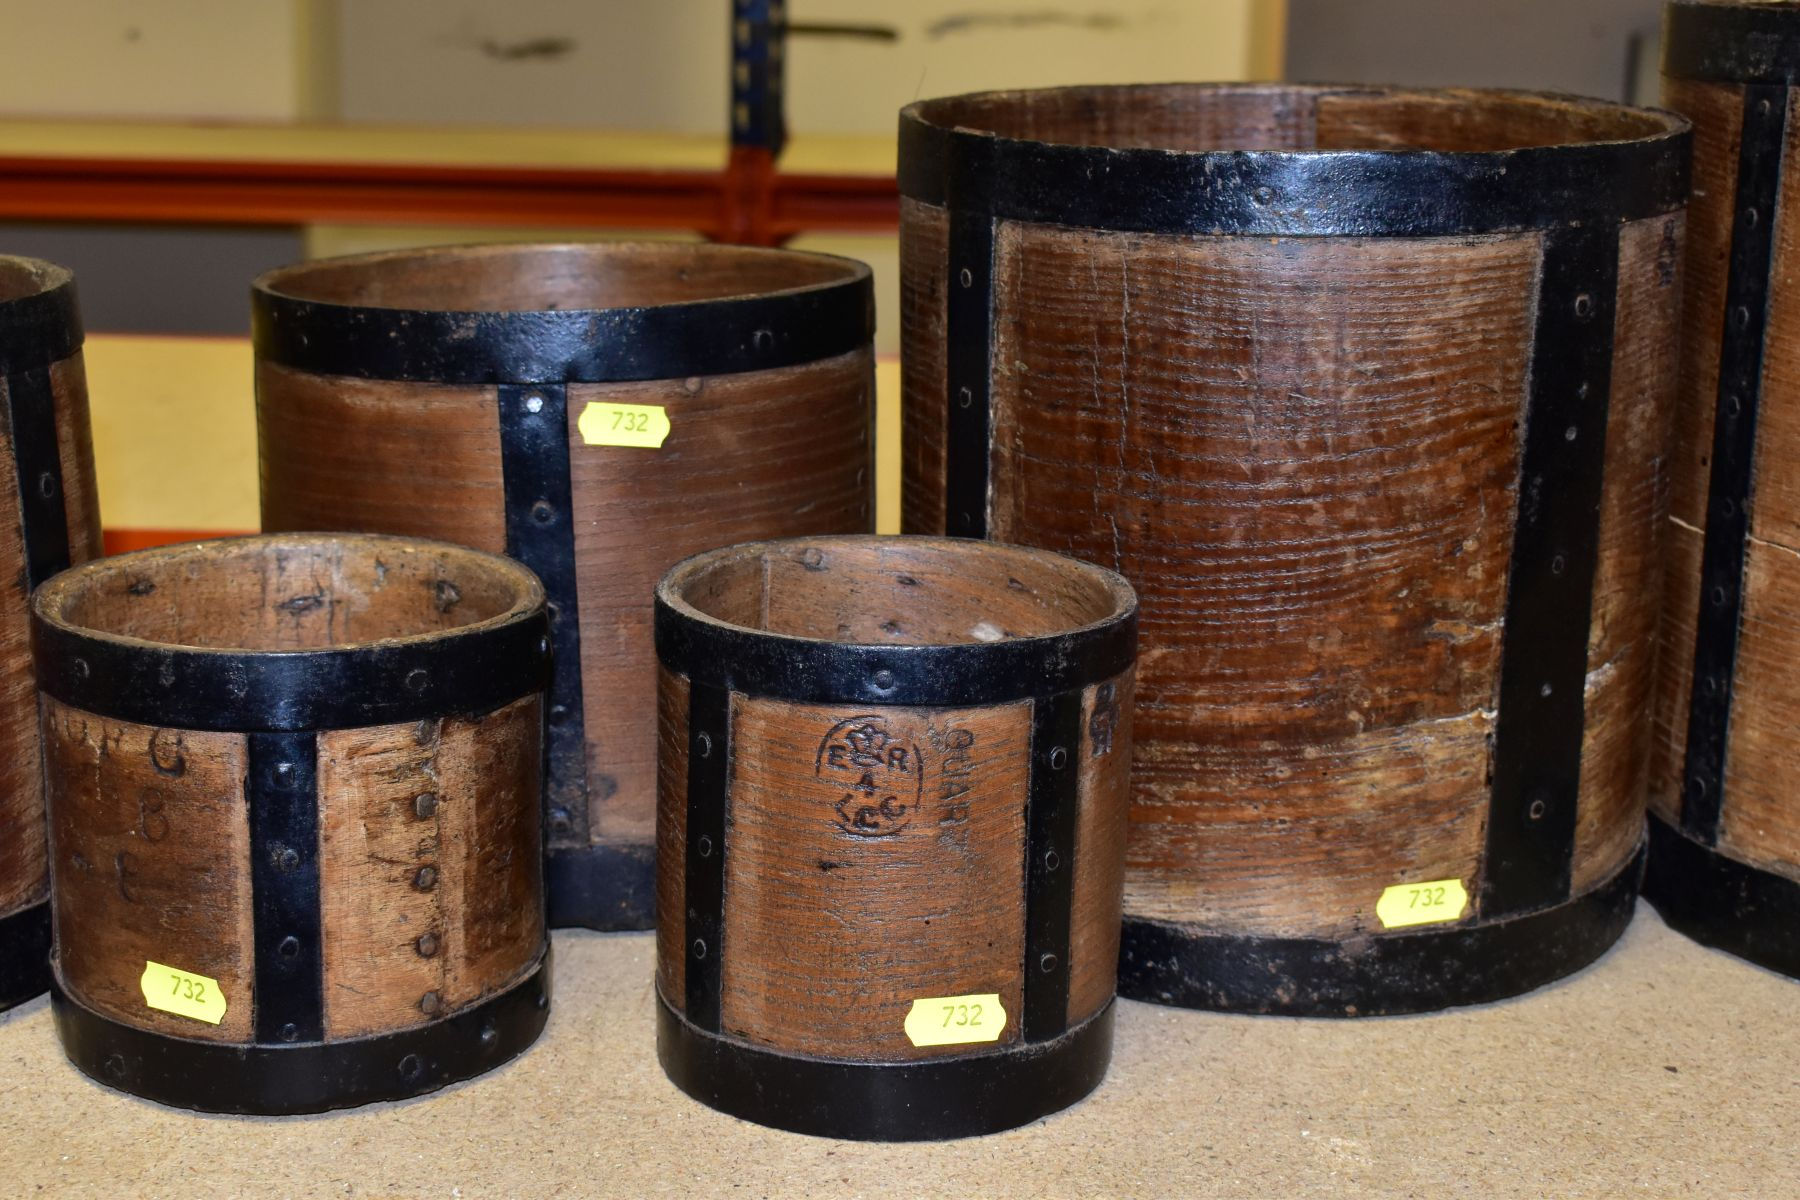 SIX BENTWOOD CORN MEASURES WITH IRON BANDING, sizes are half bushell, peck, gallon (x2) and quart ( - Image 3 of 6